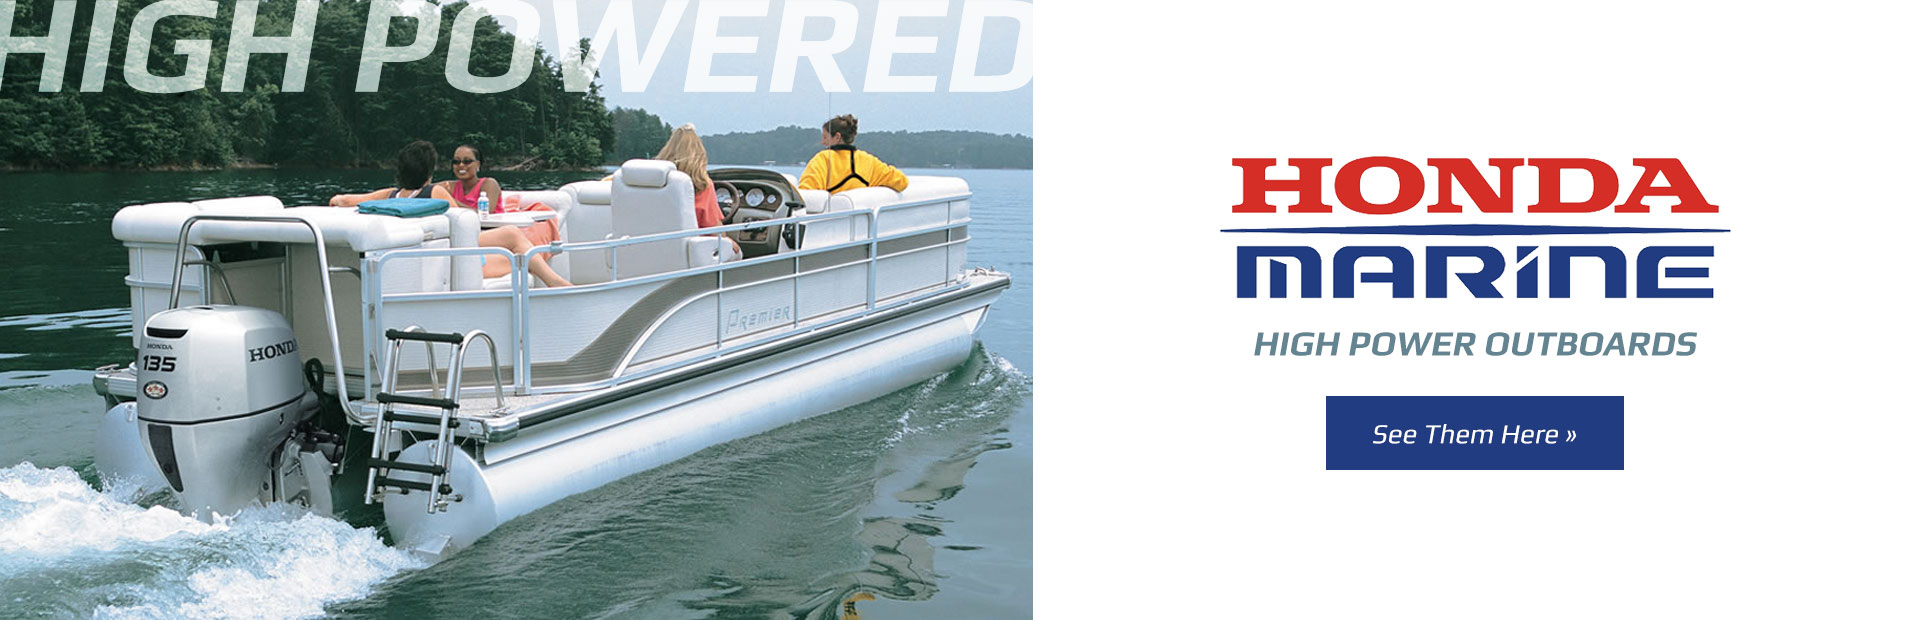 Honda Marine: Click here to view the high power models.